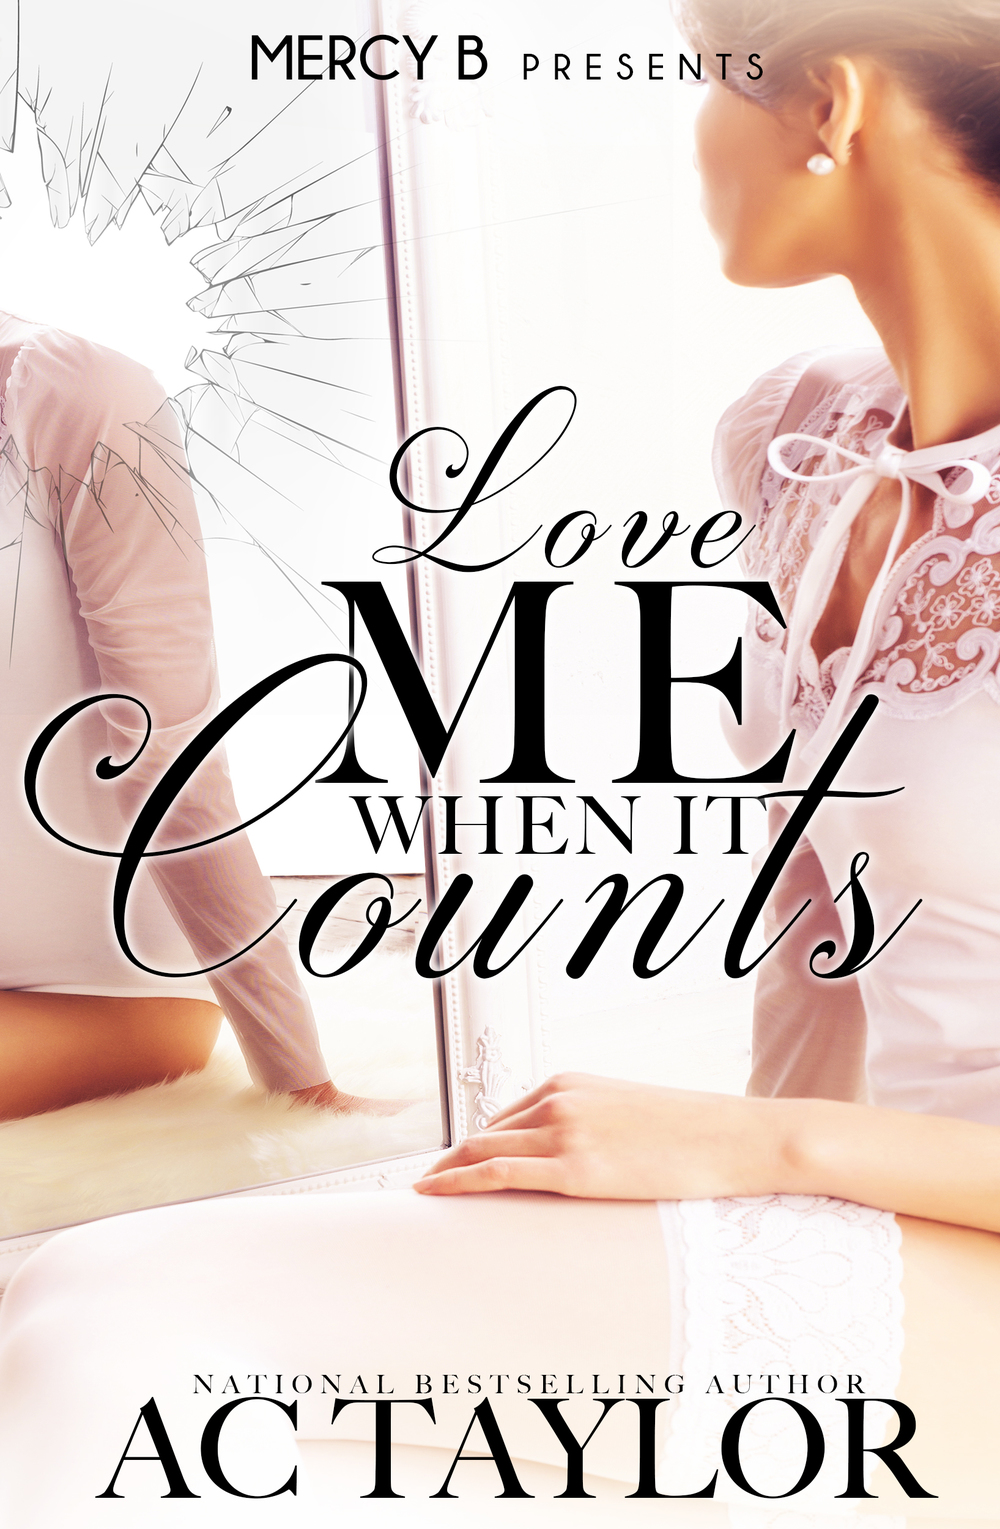 Love Me When It Counts.jpg